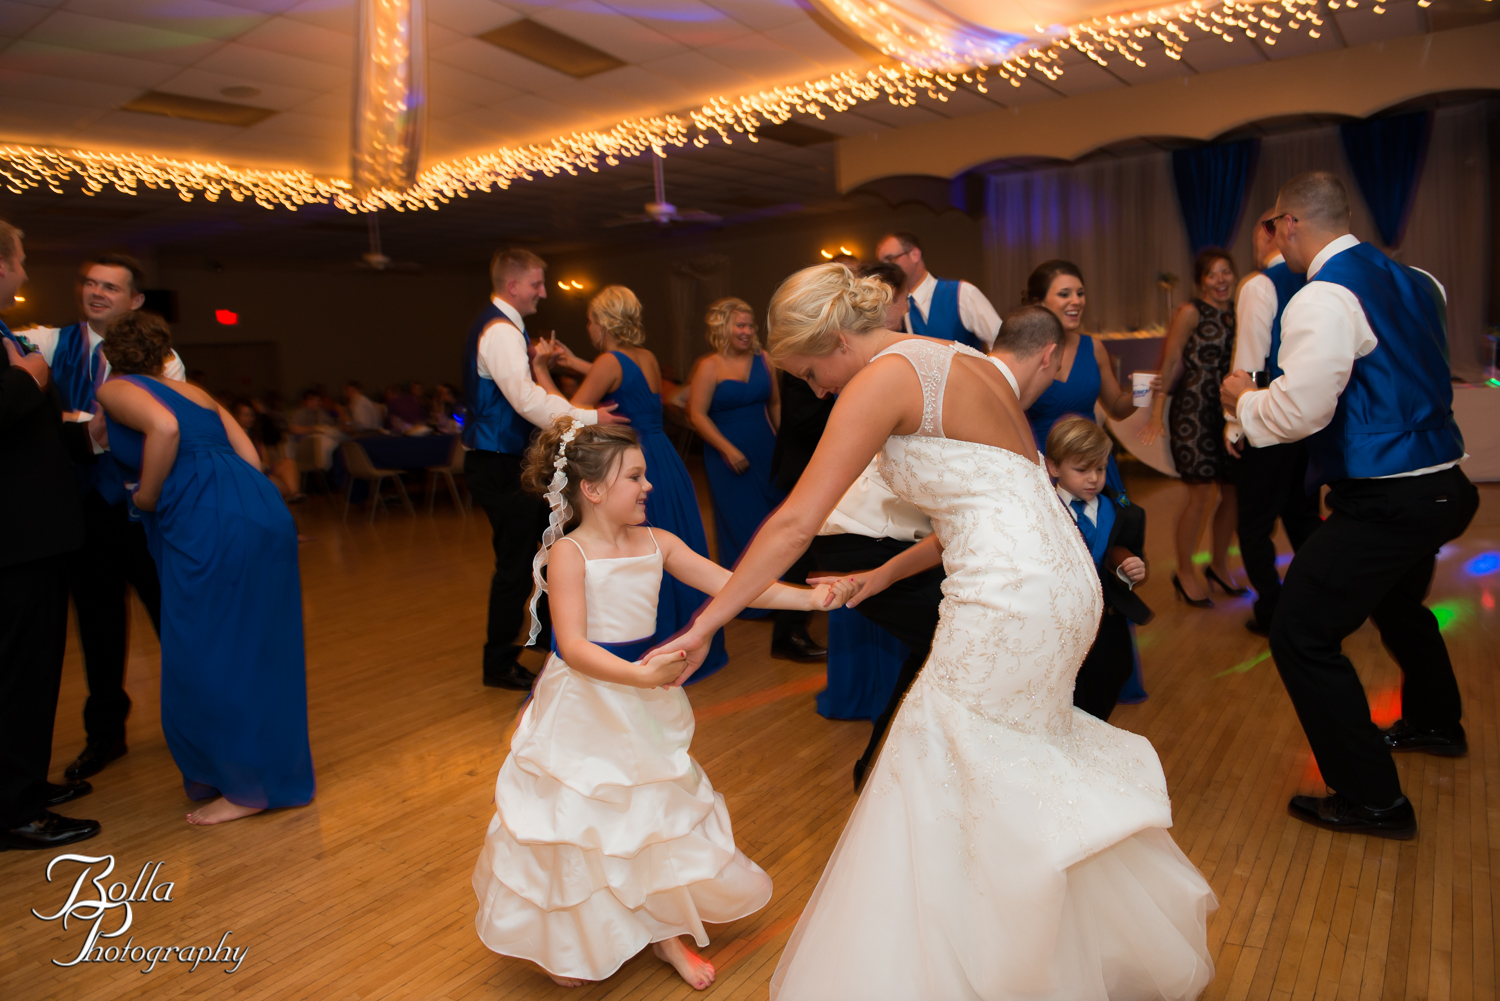 Bolla_Photography_St_Louis_wedding_photographer_Edwardsville_Highland-0460.jpg